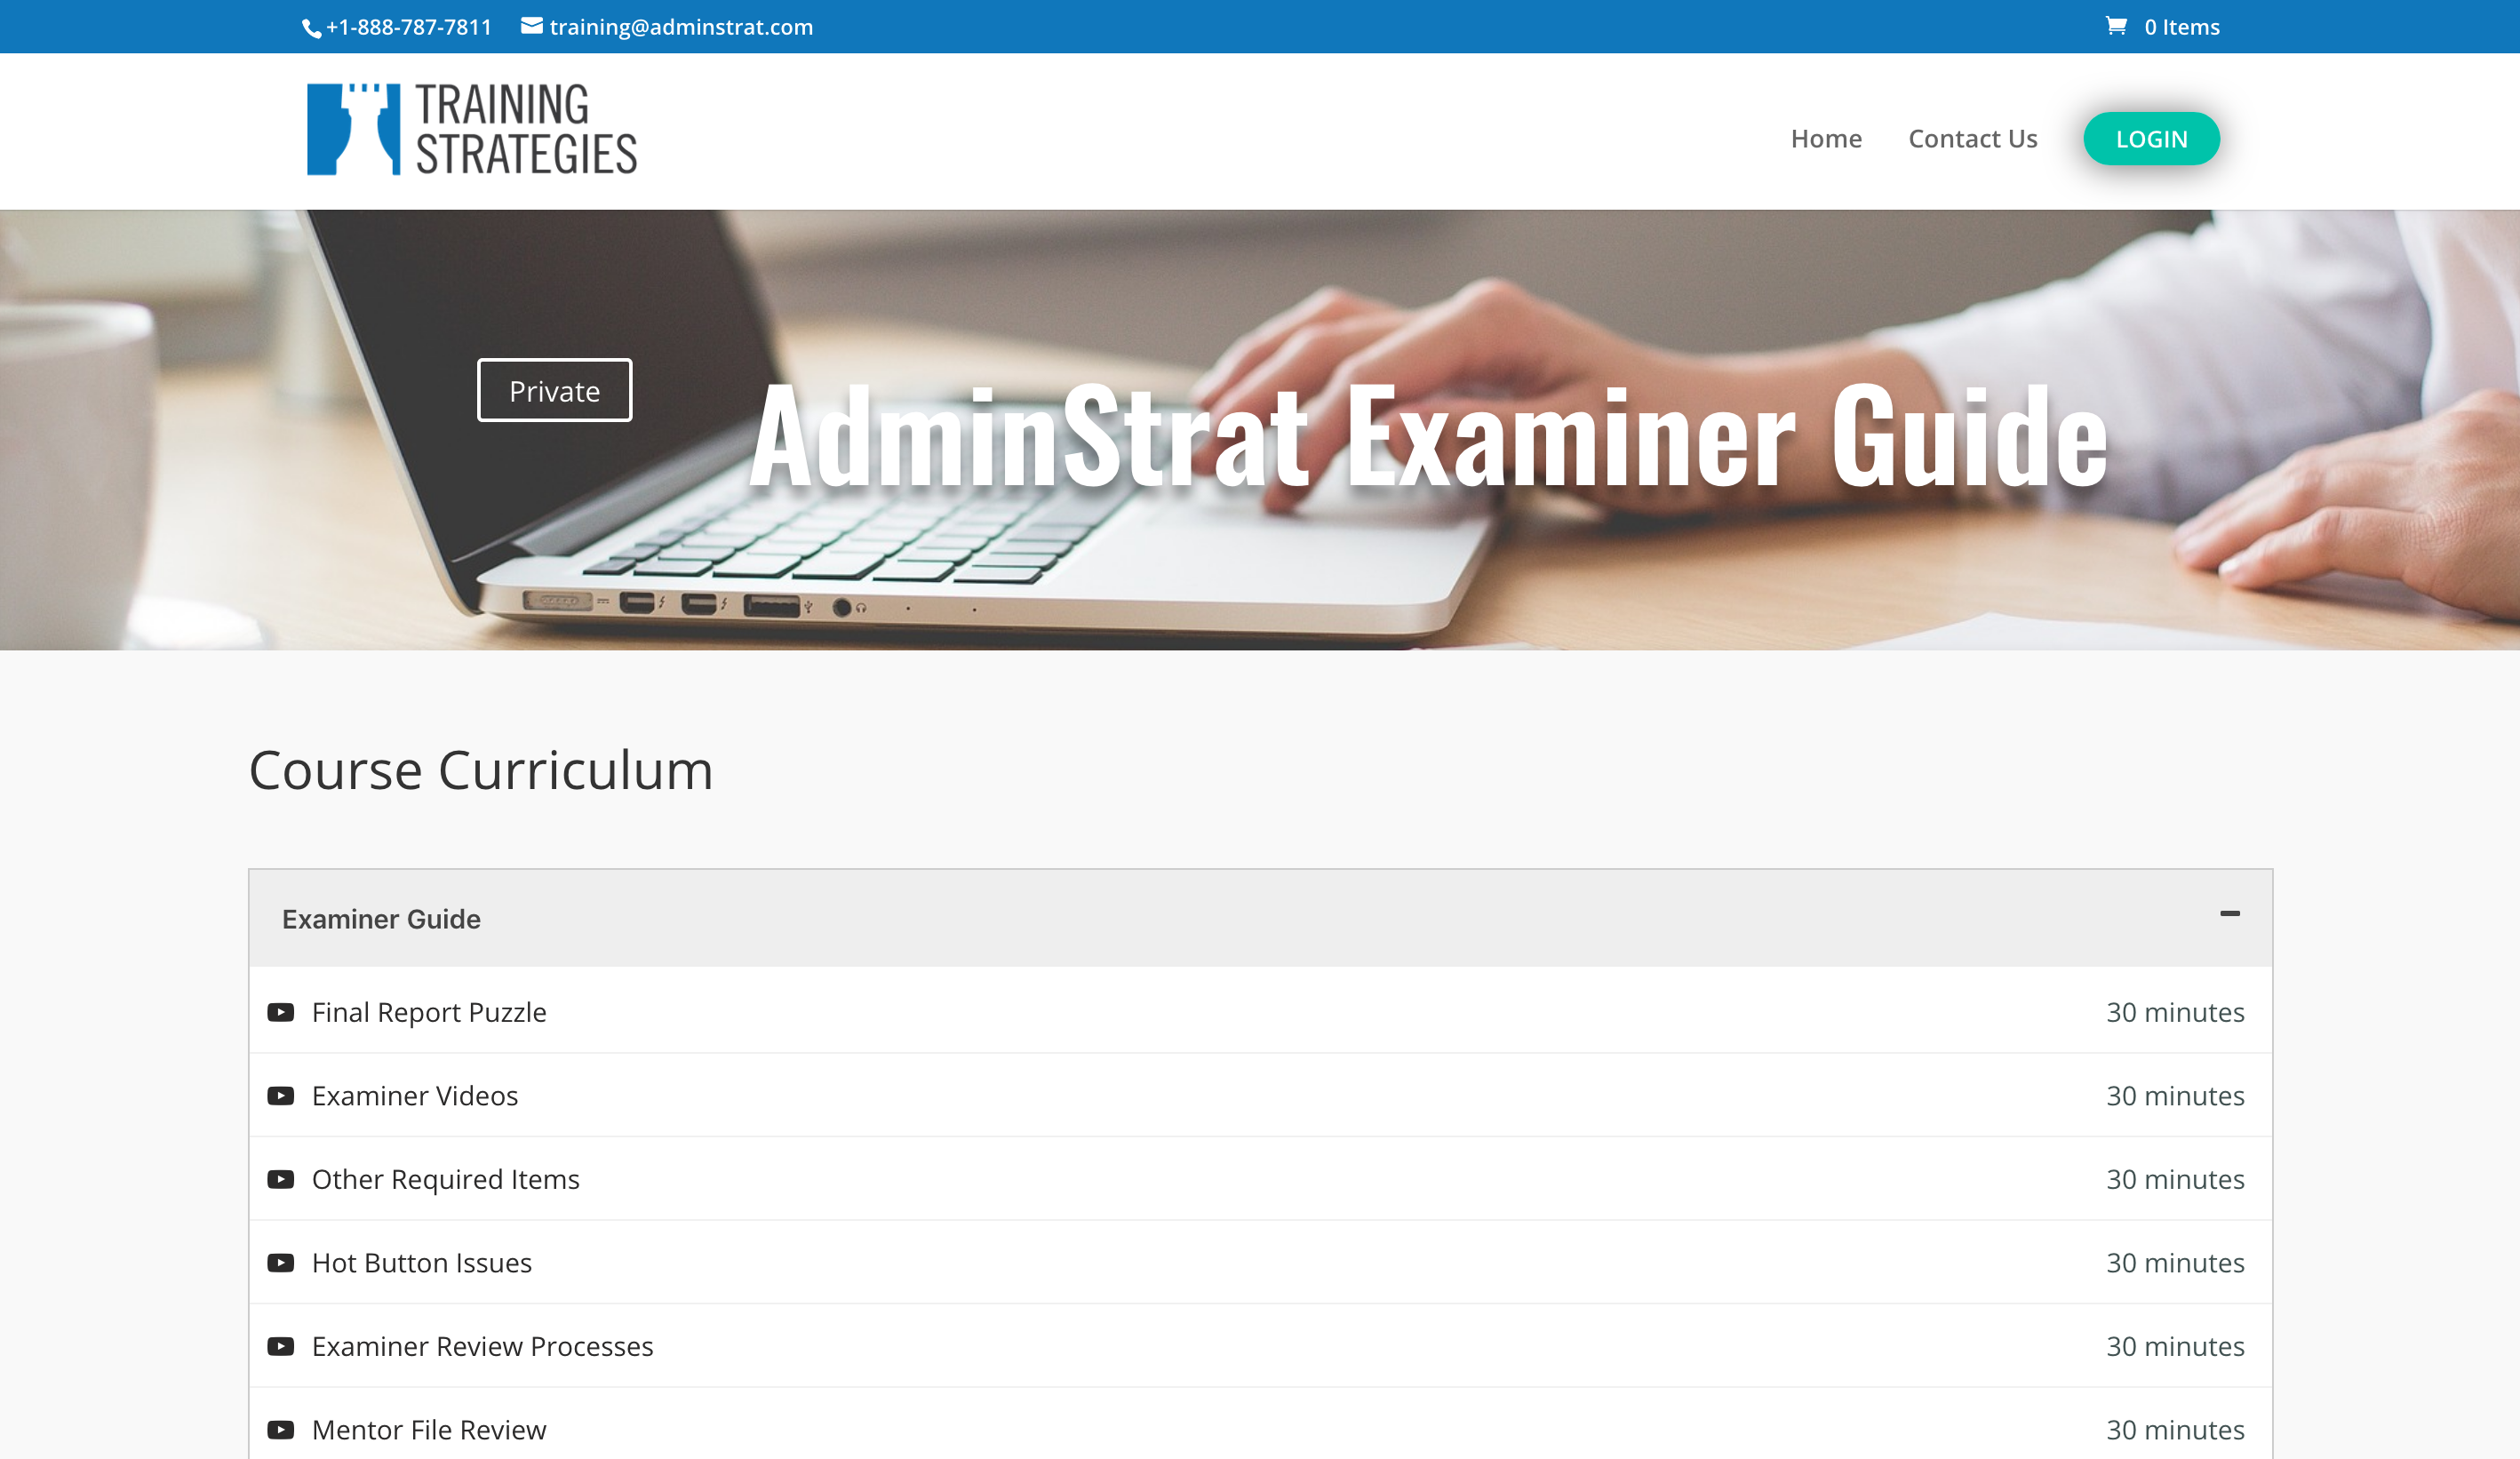 insurance adjuster training company website sells online AdminStrat courses with LMS eLearning platform